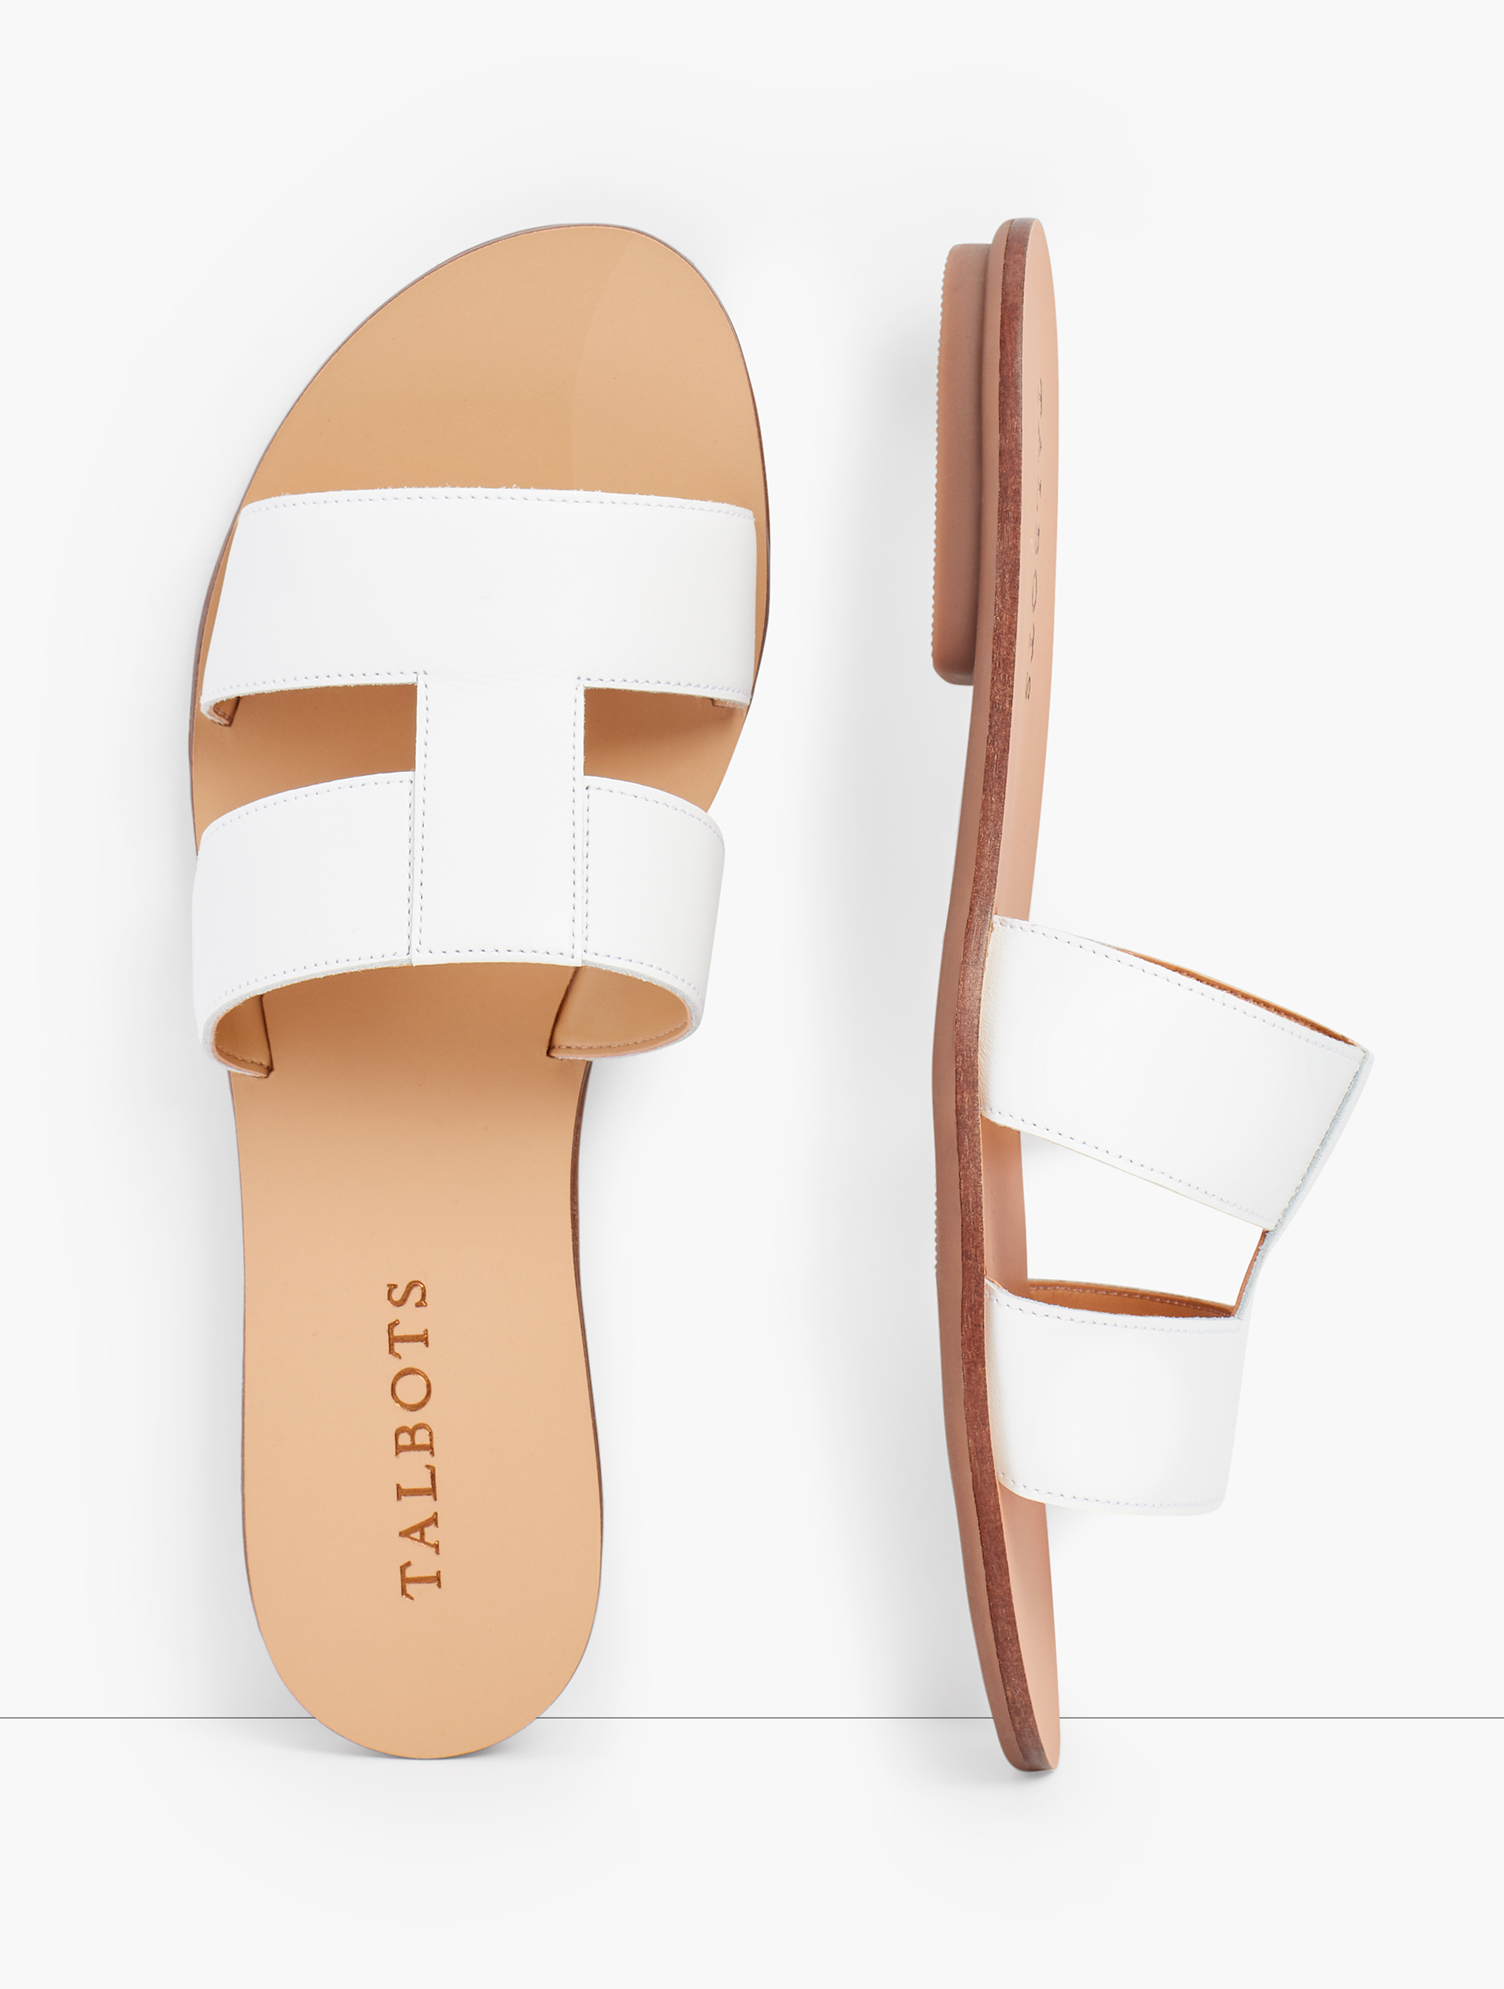 Luxe Vachetta leather slides. With geometric flair. A chic and easy go-to any day of the week. Features Gift Box/Gift Wrap is not available for this item 1/3 inches heel Rubber Sole Imported Material: 100% Leather Hannah Vachetta Leather Slides - White - 11M Talbots